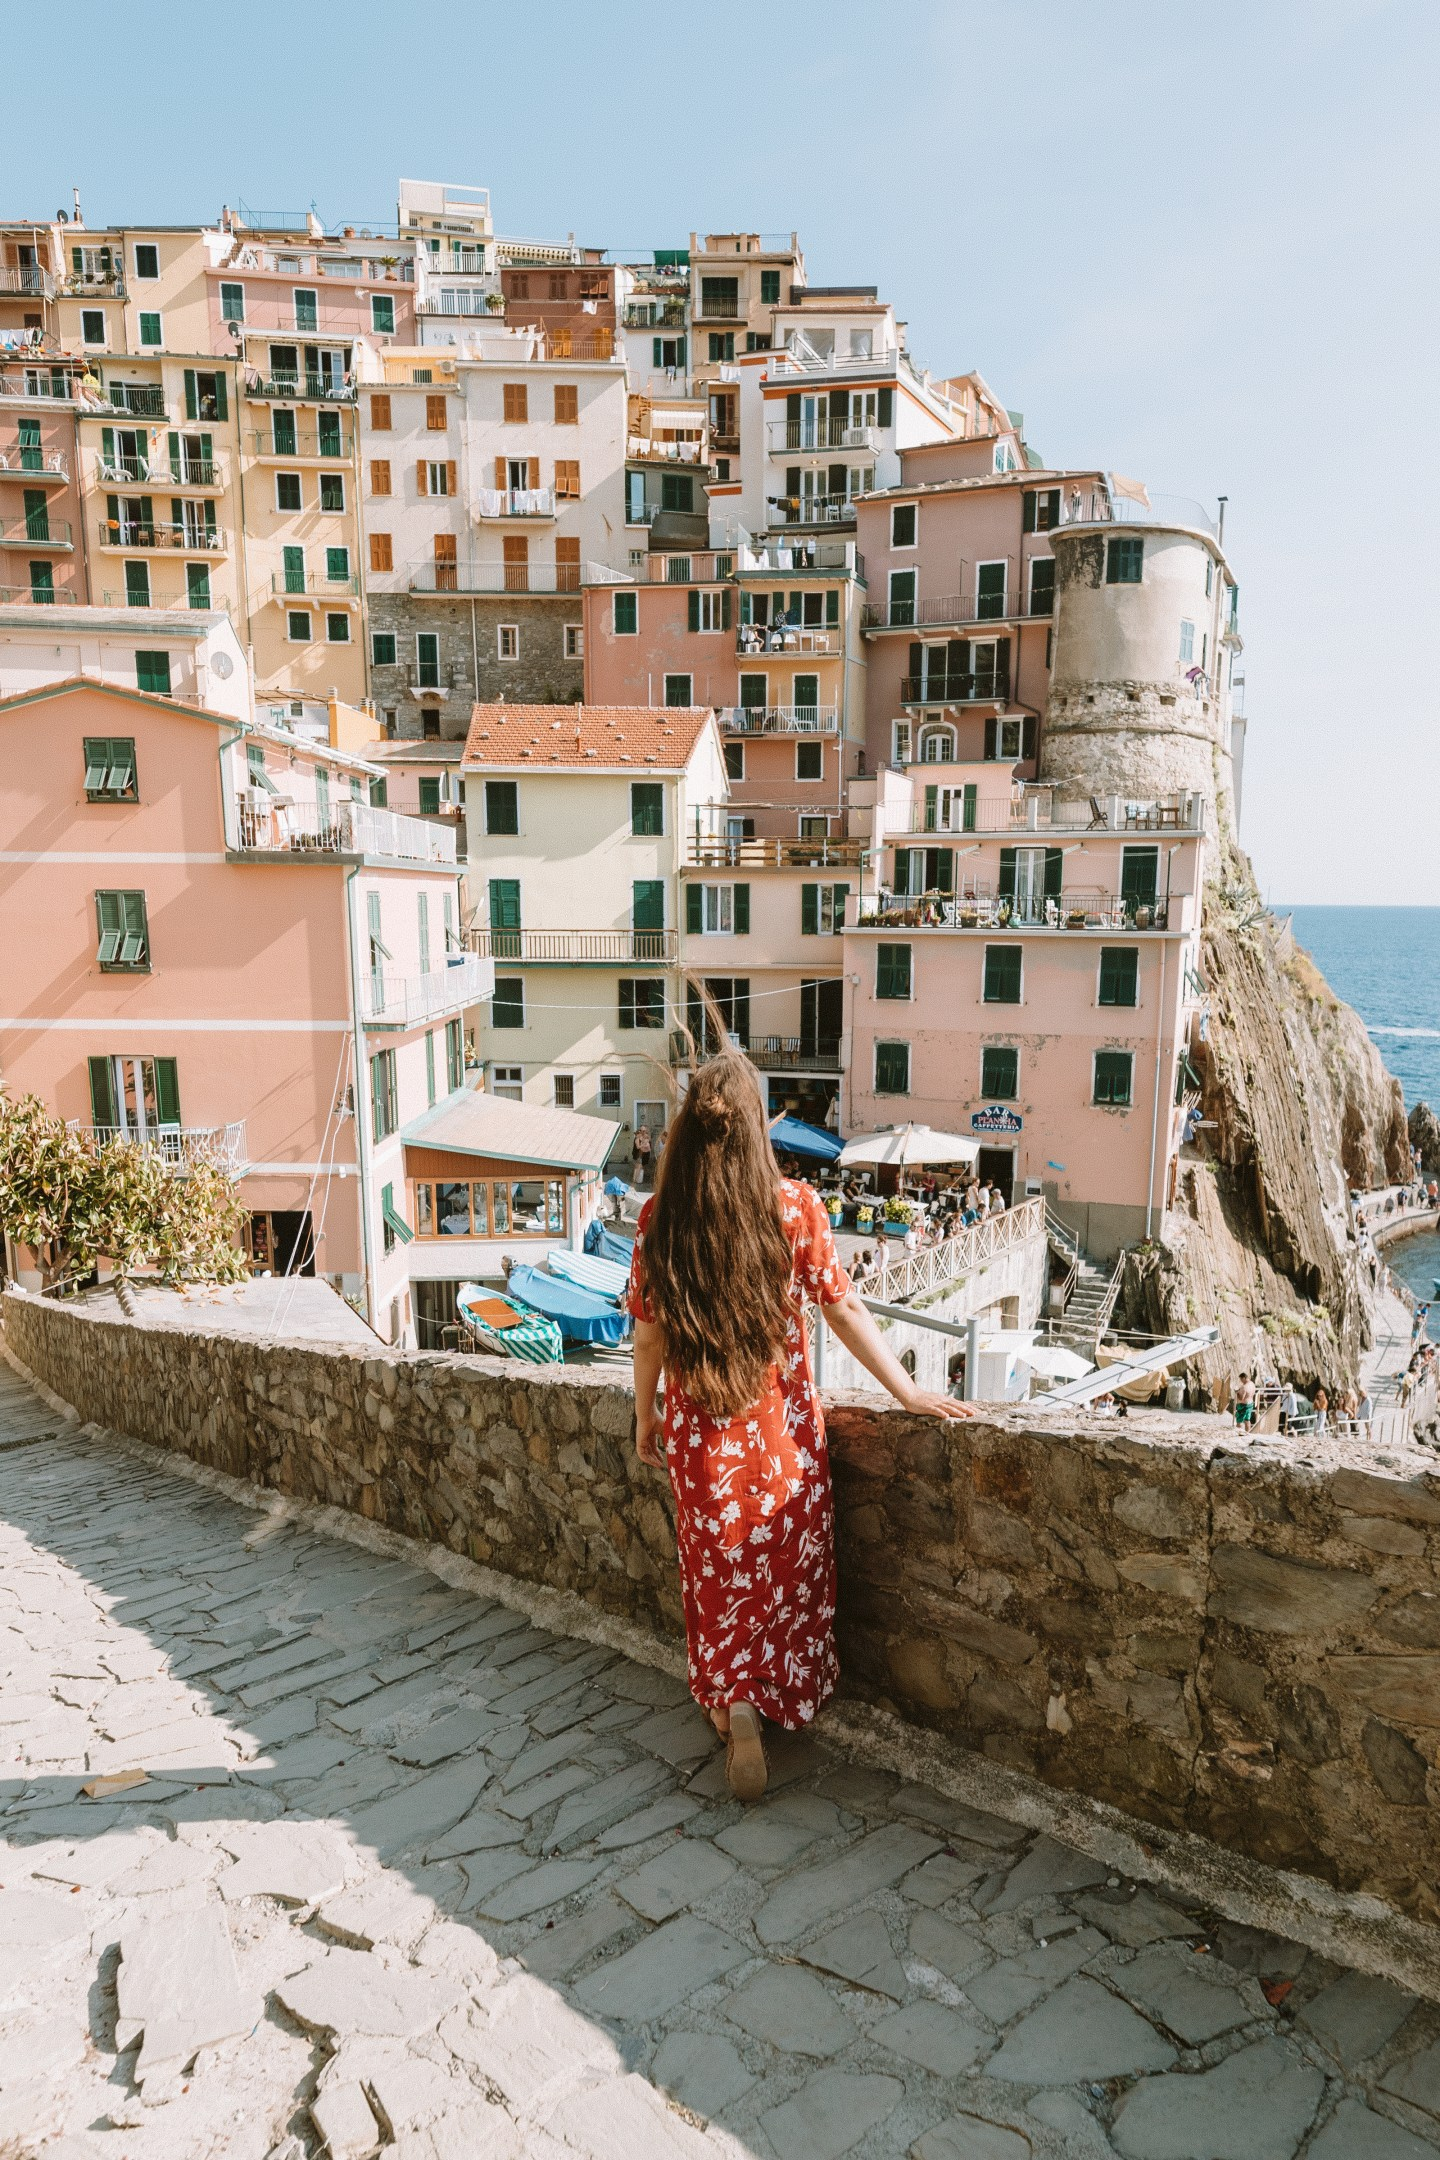 Overlooking the colorful buildings of Manarola